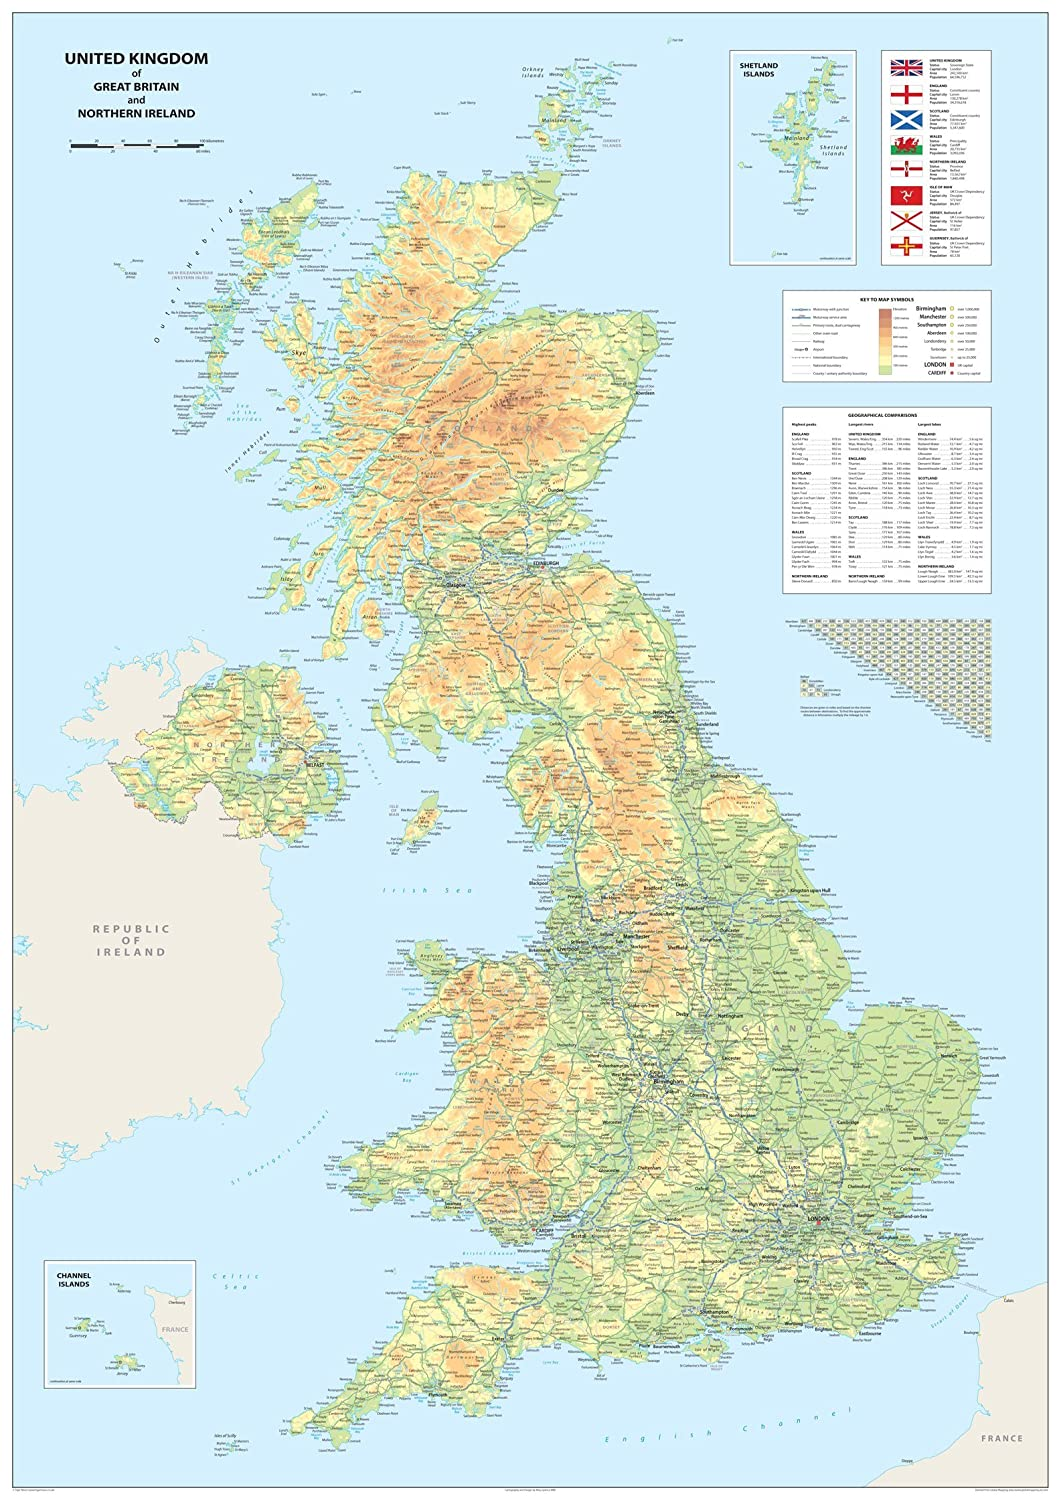 Map Of Northern Ireland And Ireland.United Kingdom Of Great Britain And Northern Ireland Map A0 Size 84 1 X 118 9 Cm